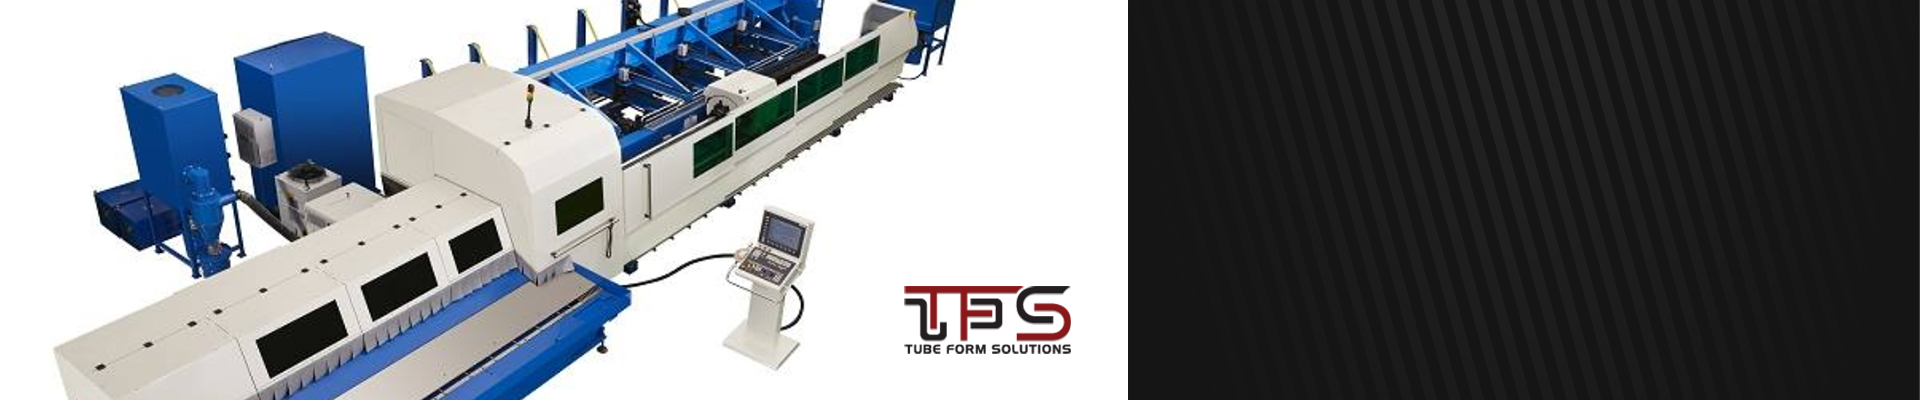 TBS, Pipe benders and pipe manufacturing machinery